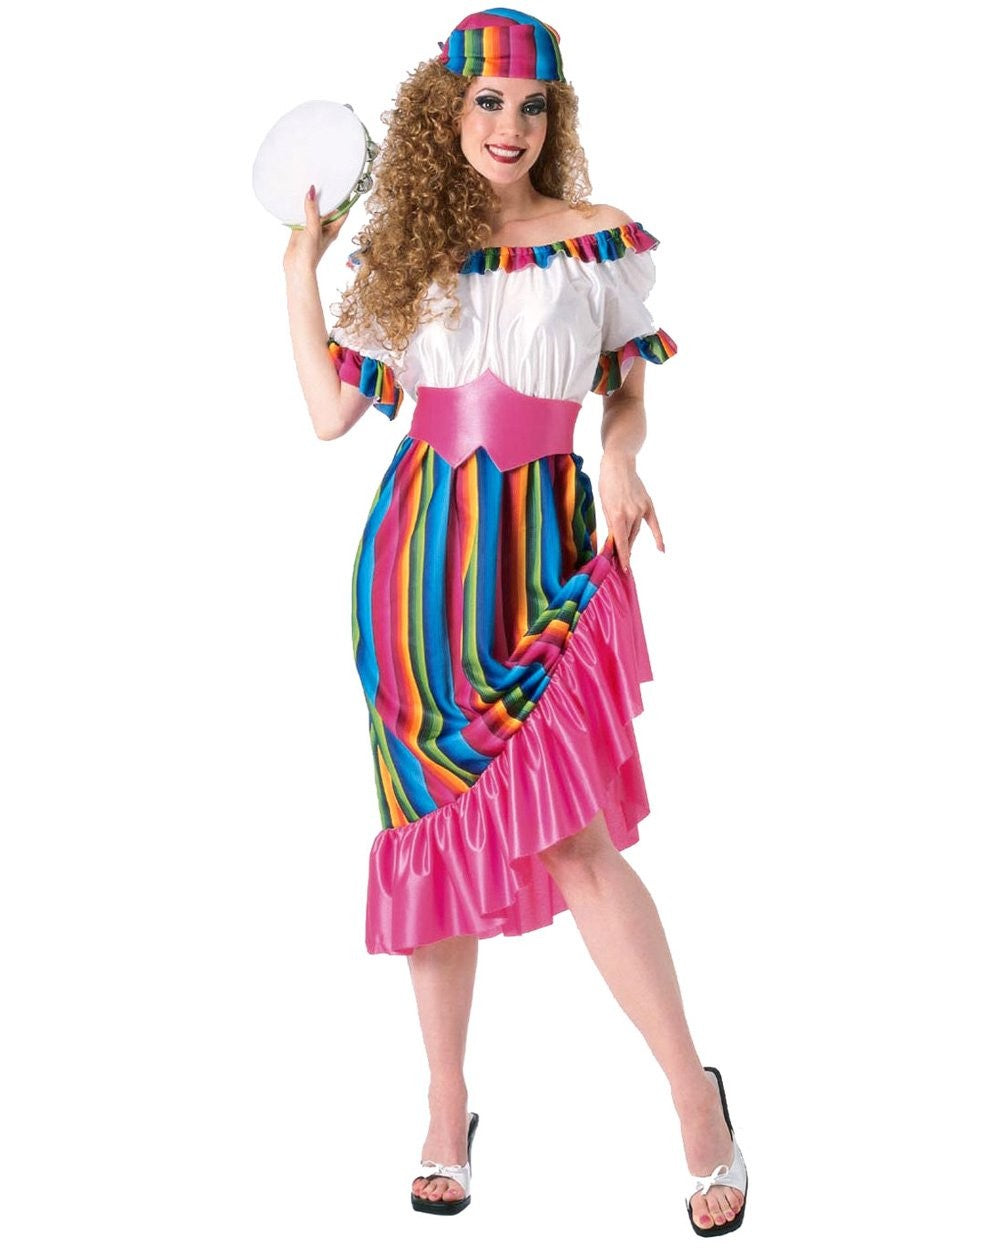 Women's Costume - South Of The Border